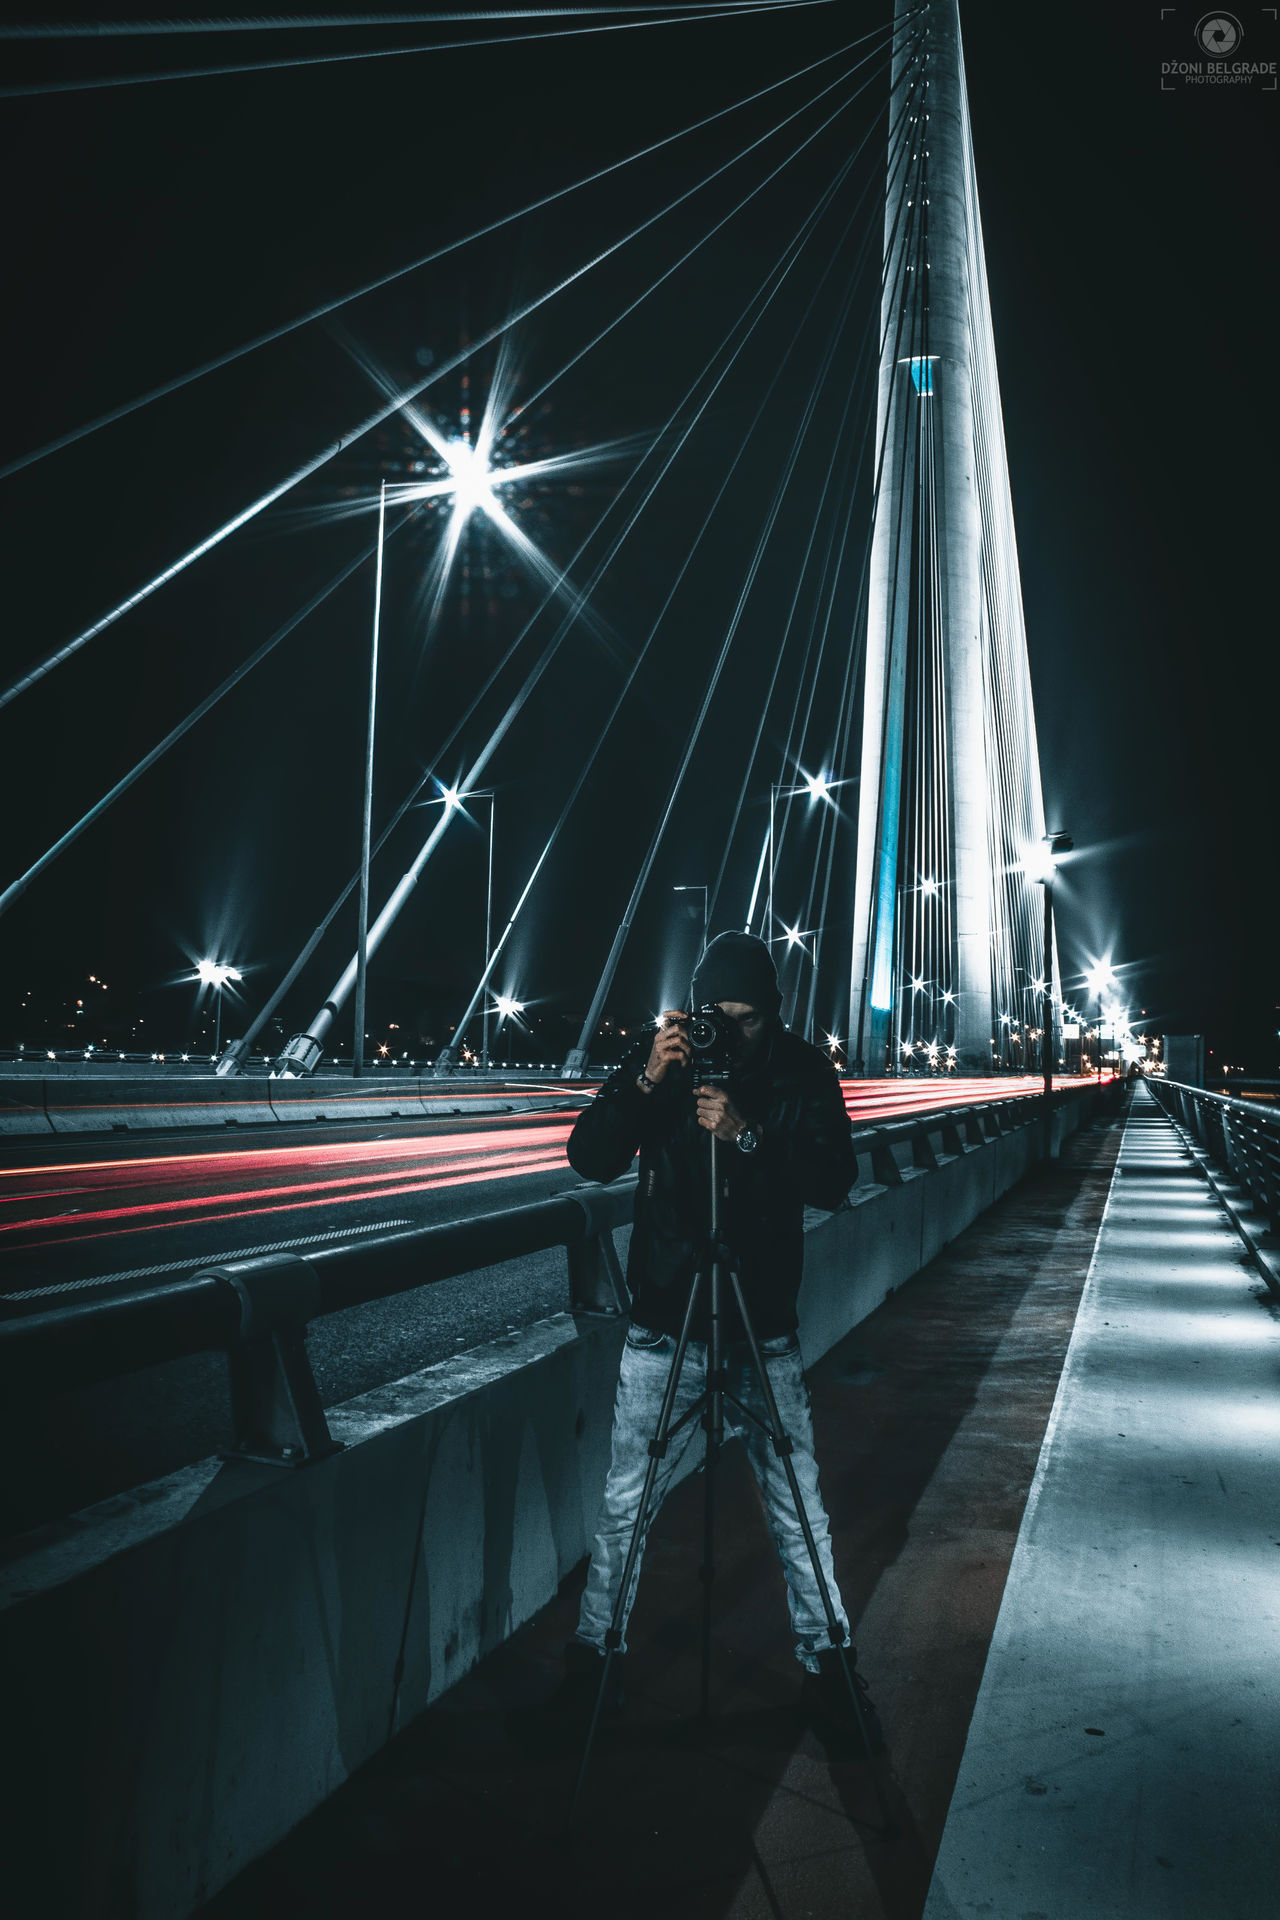 Architecture Longexposure Nikonphotography Don't Jump View Hello World EyeEm Best Shots Man People Shoot It Challenge Belgrade Mirrorselfie Love Moody Photooftheday Nightphotography Night Night Lights Serbia